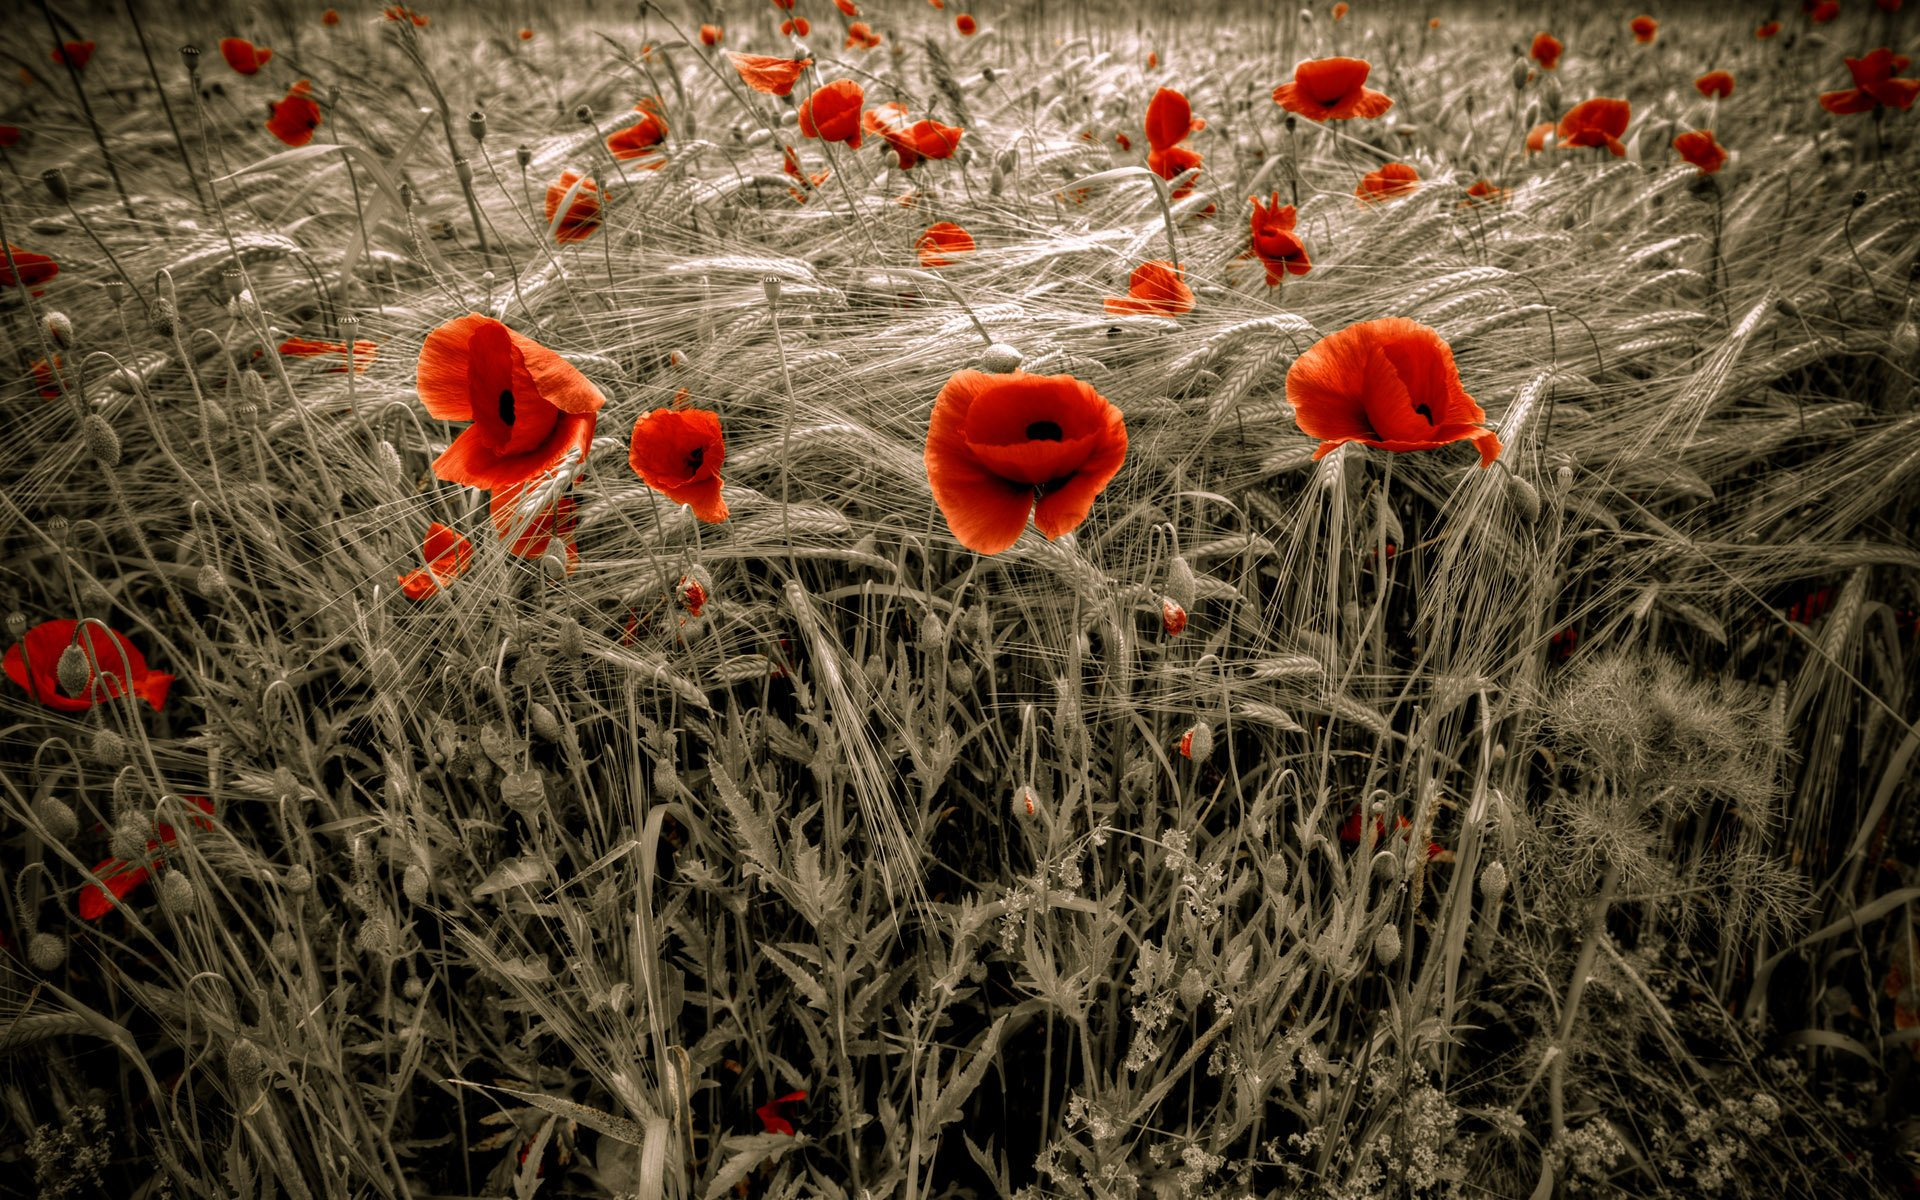 Beautiful Red Poppy wallpaper  wallpaper free download 1920x1200